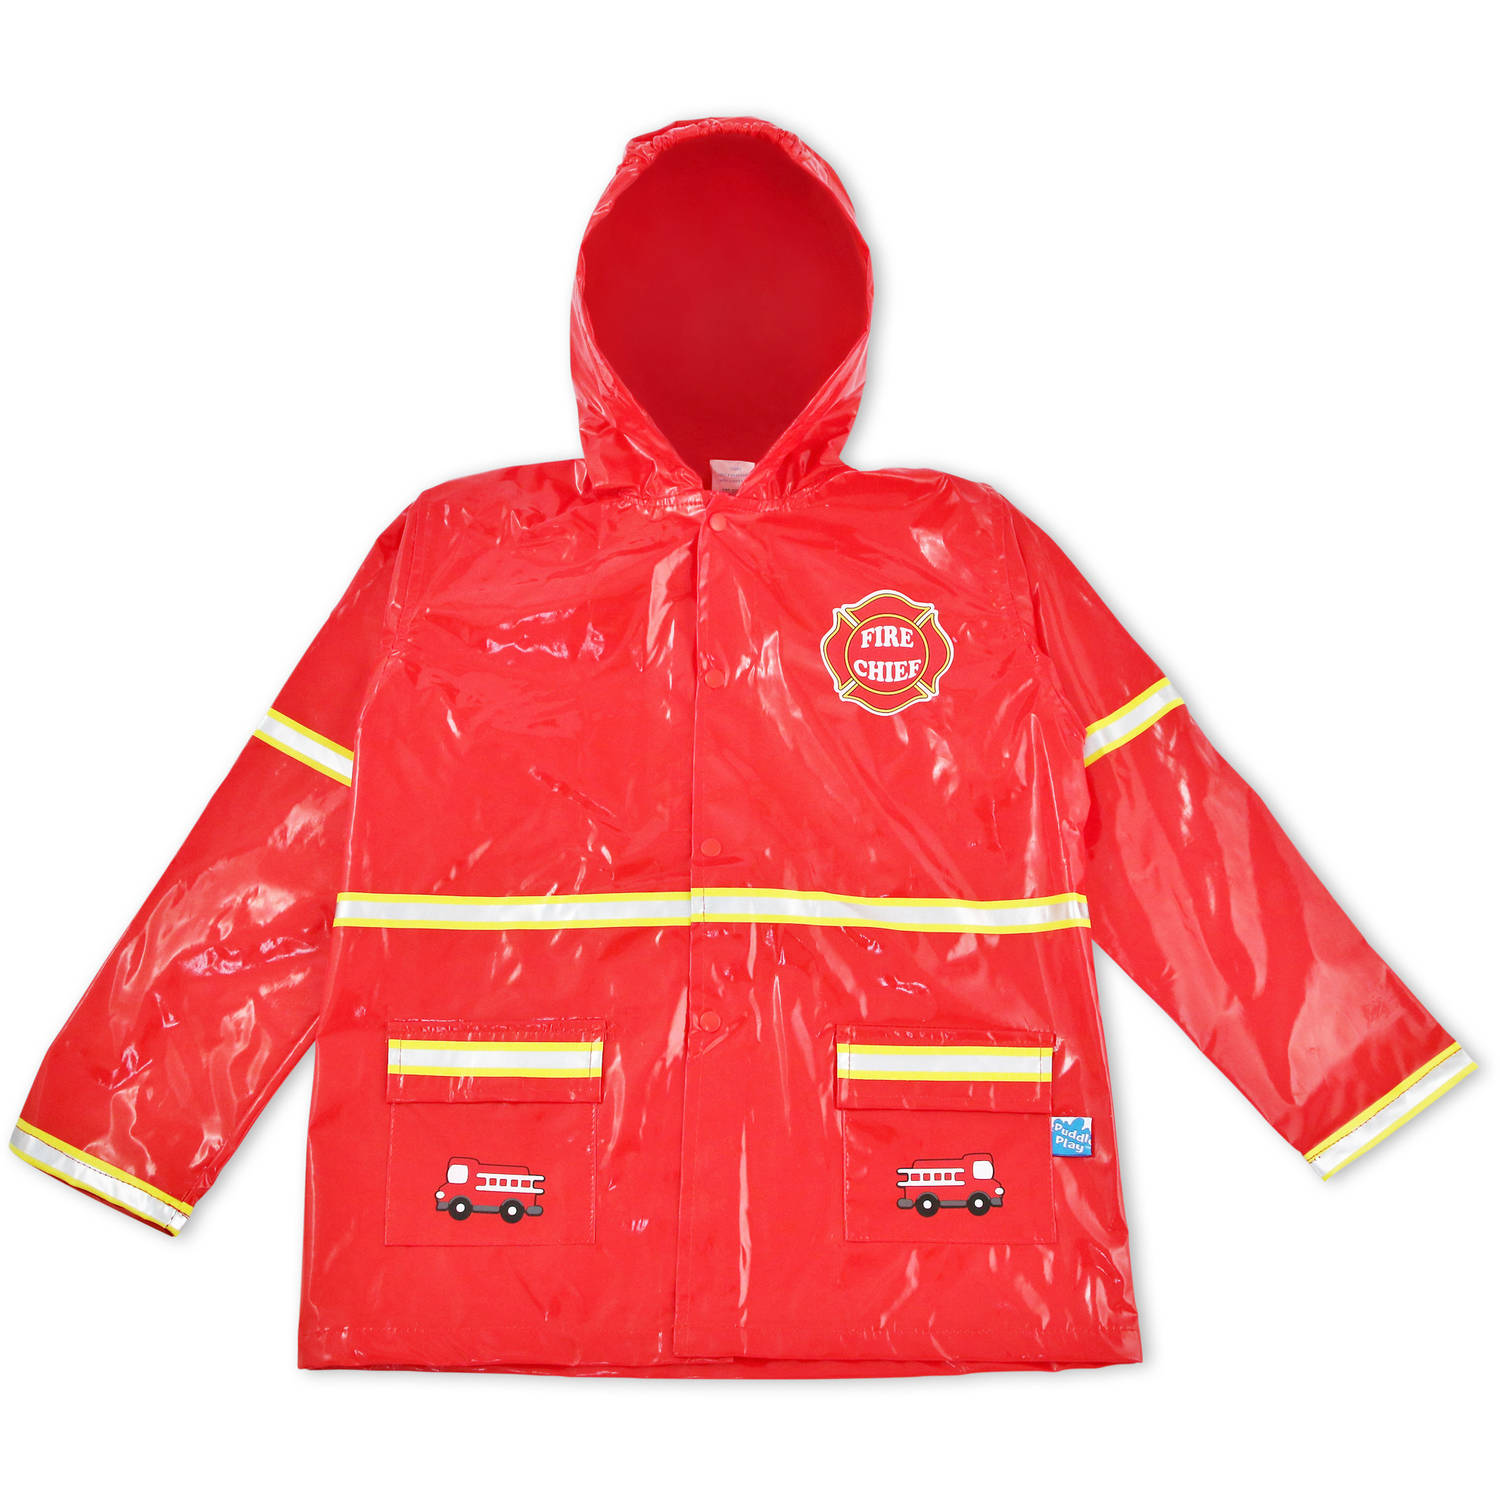 Image of ABG red fire chief rain slicker with hood.